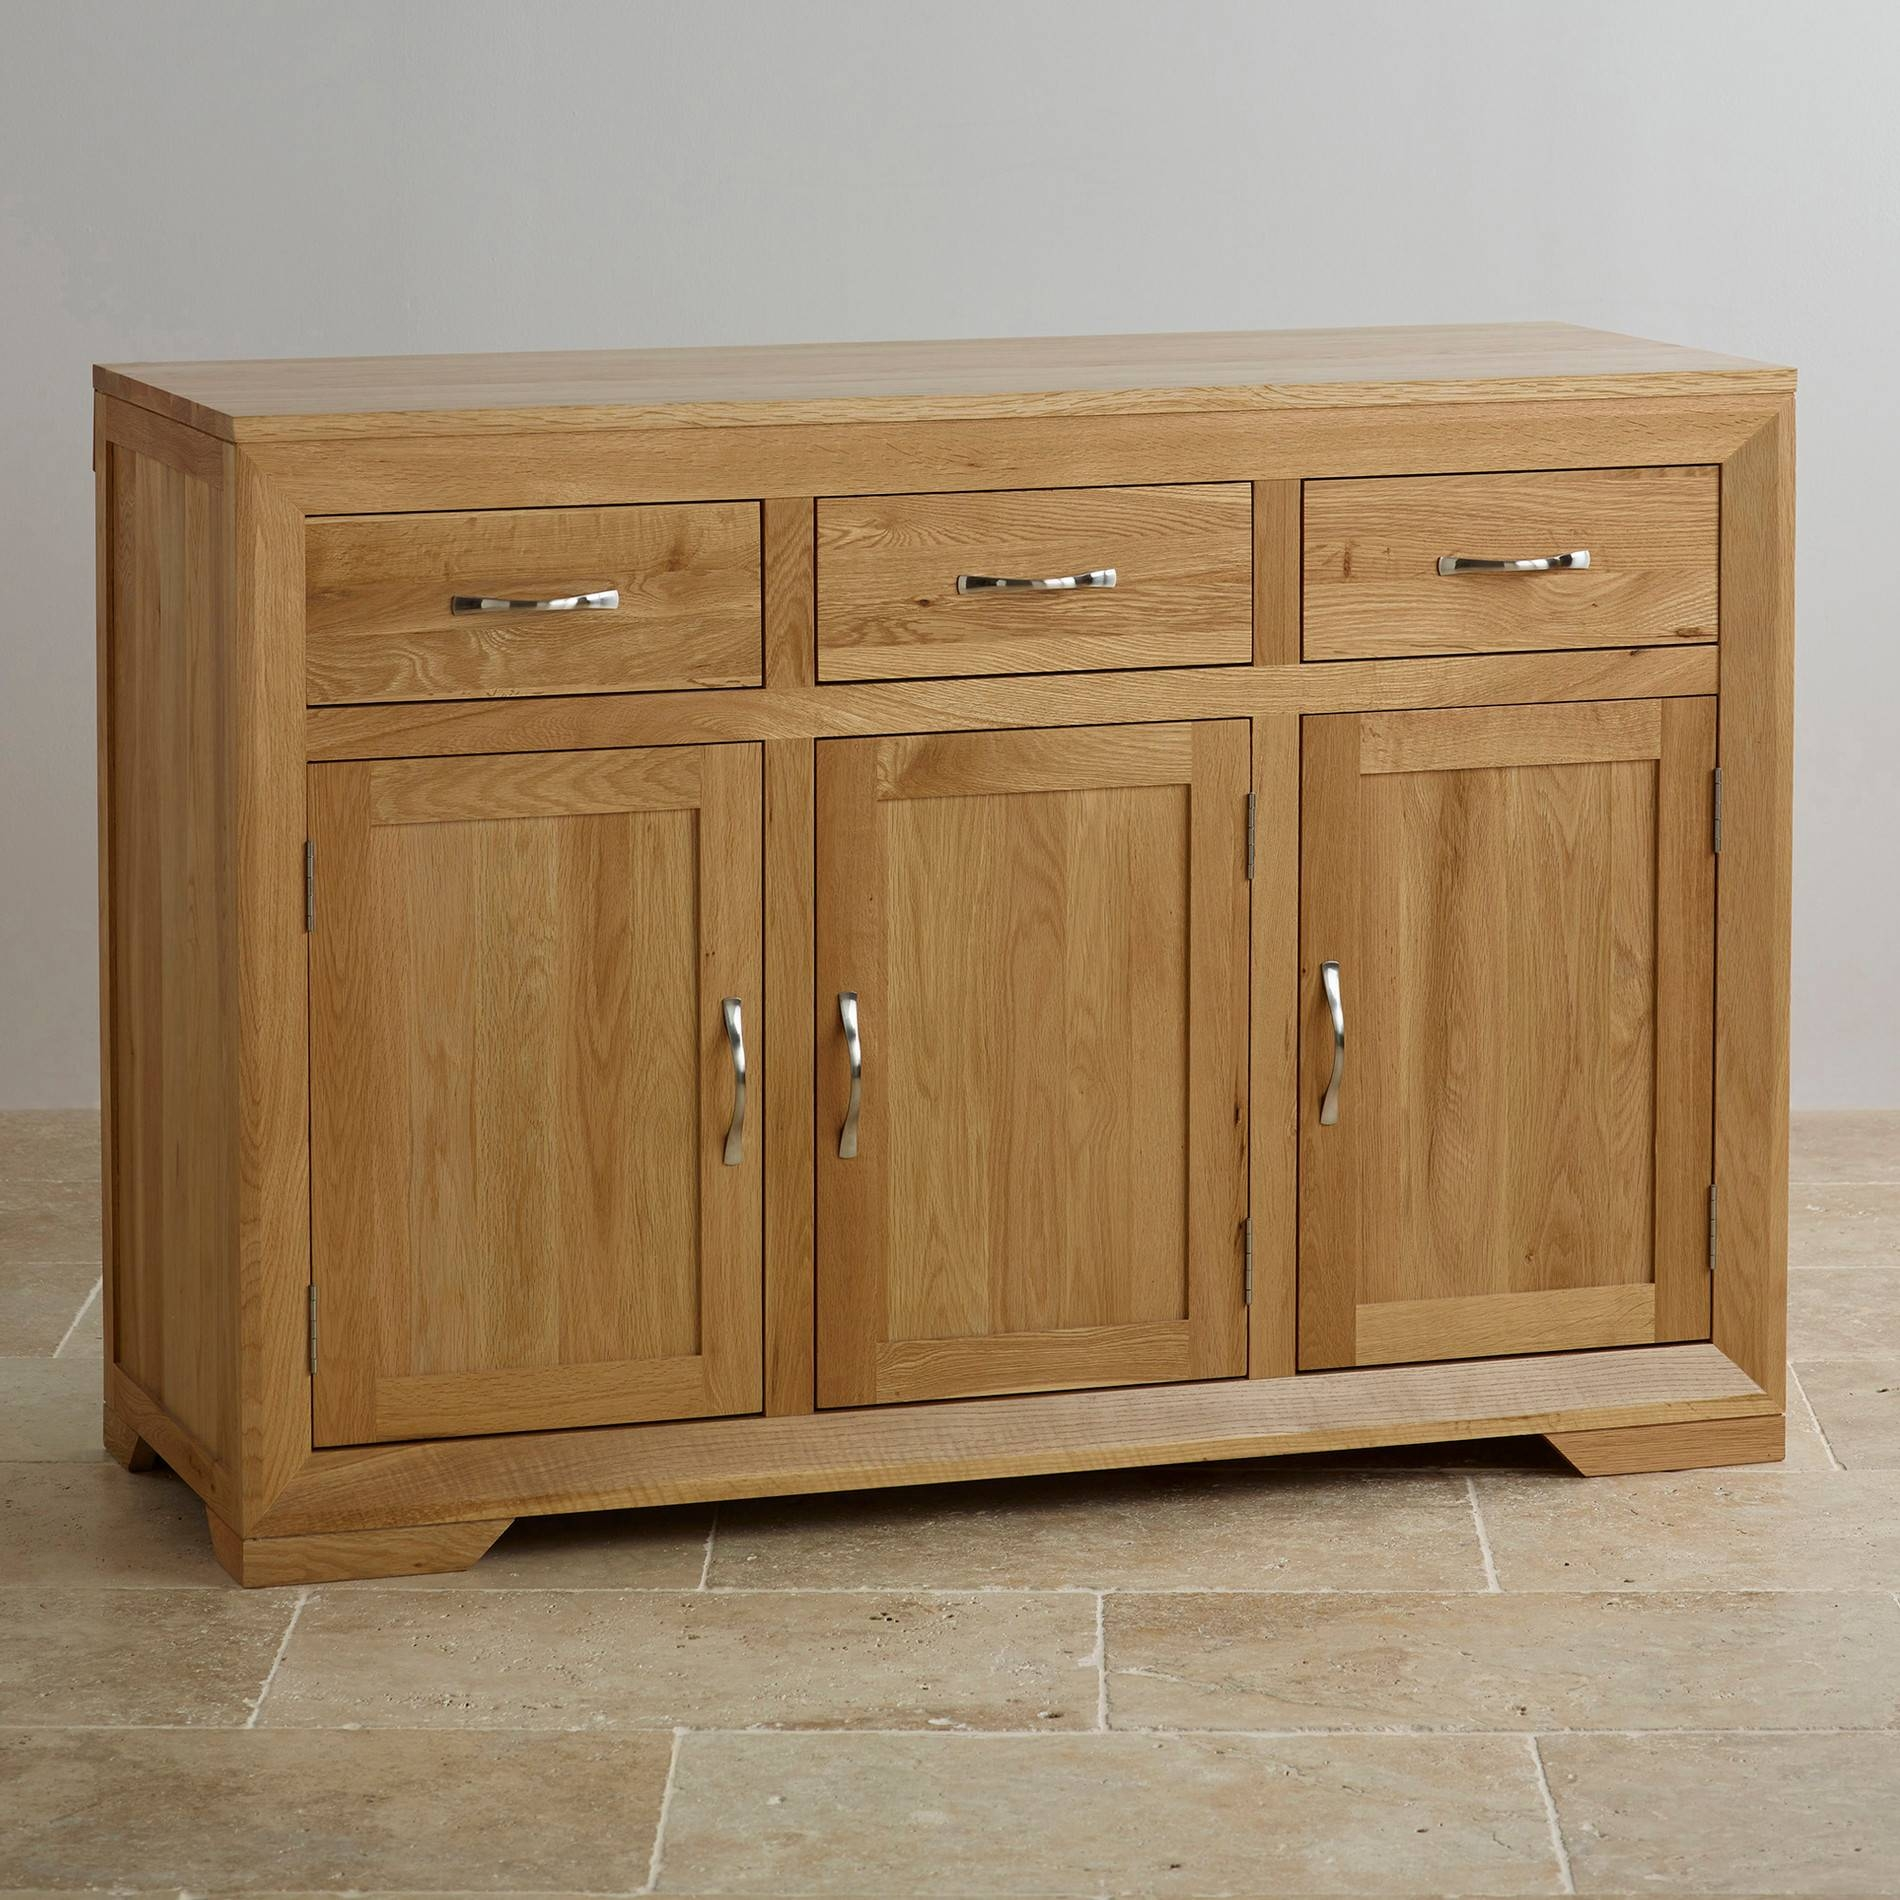 Sideboards | 100% Solid Hardwood | Oak Furniture Land intended for Slim Sideboards (Image 24 of 30)